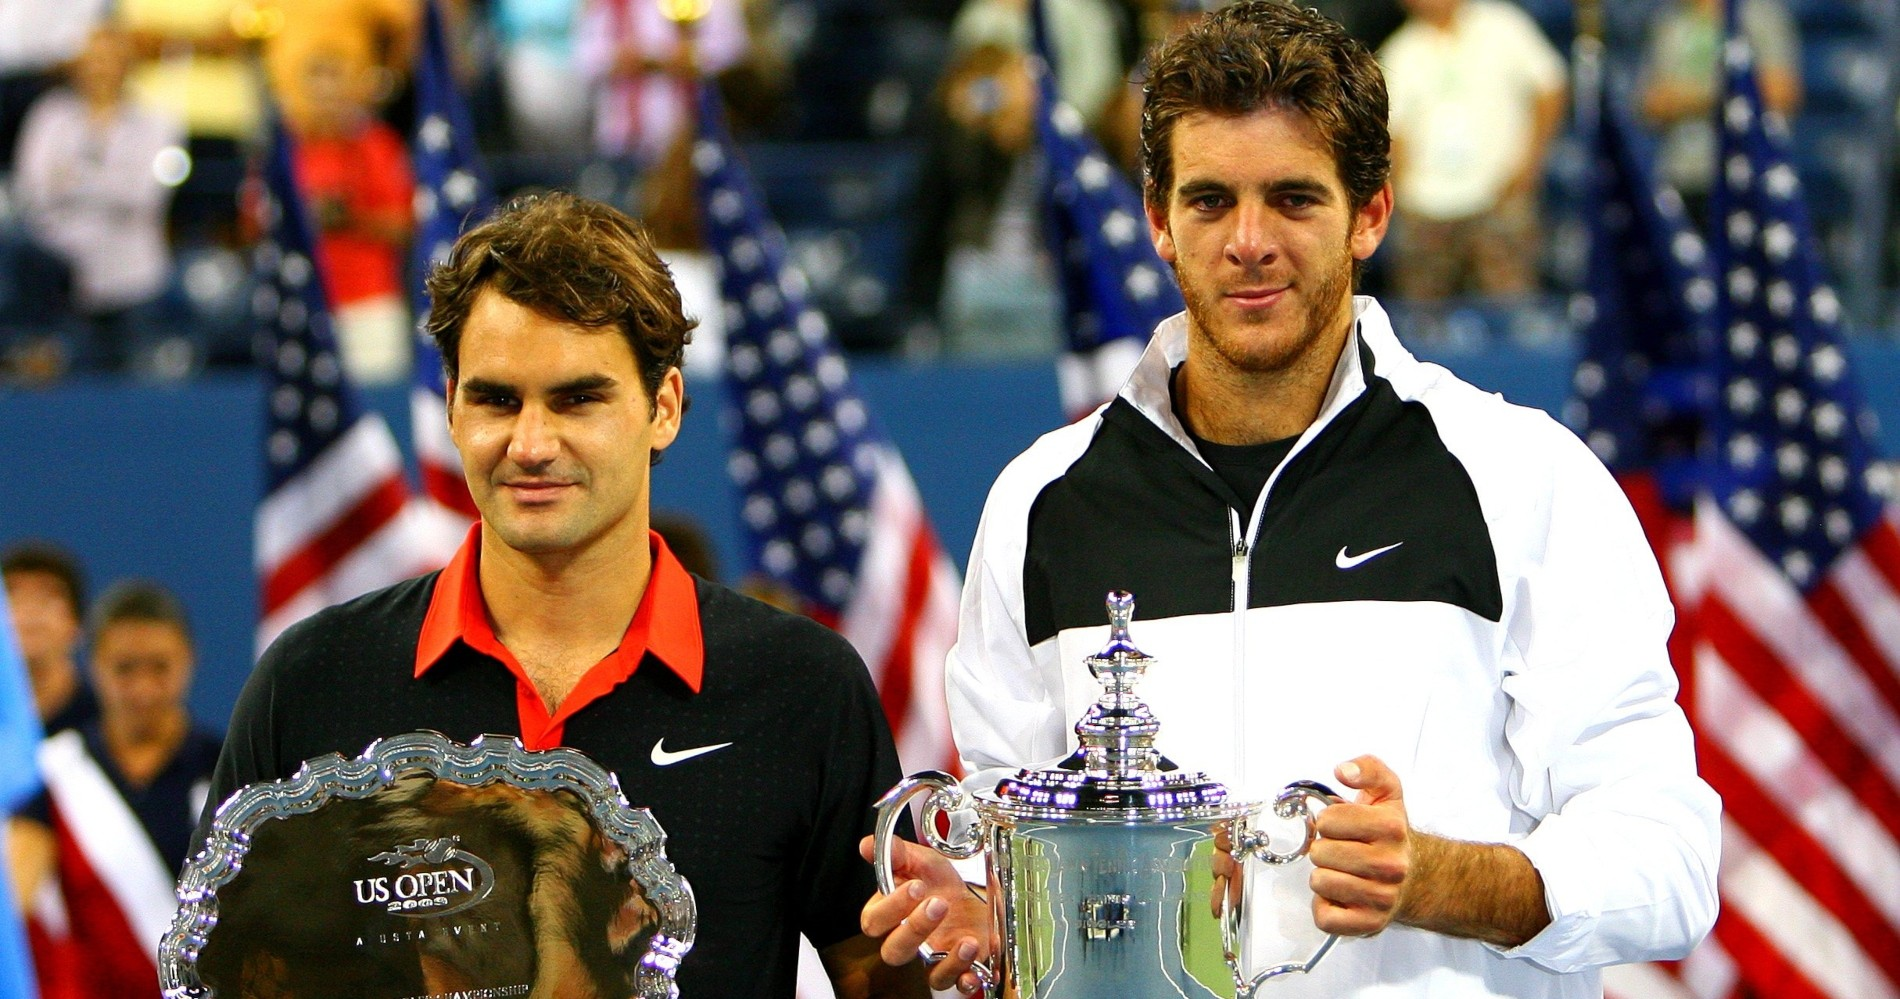 Juan Martin Del Potro and Roger Federer after their 2009 US Open final